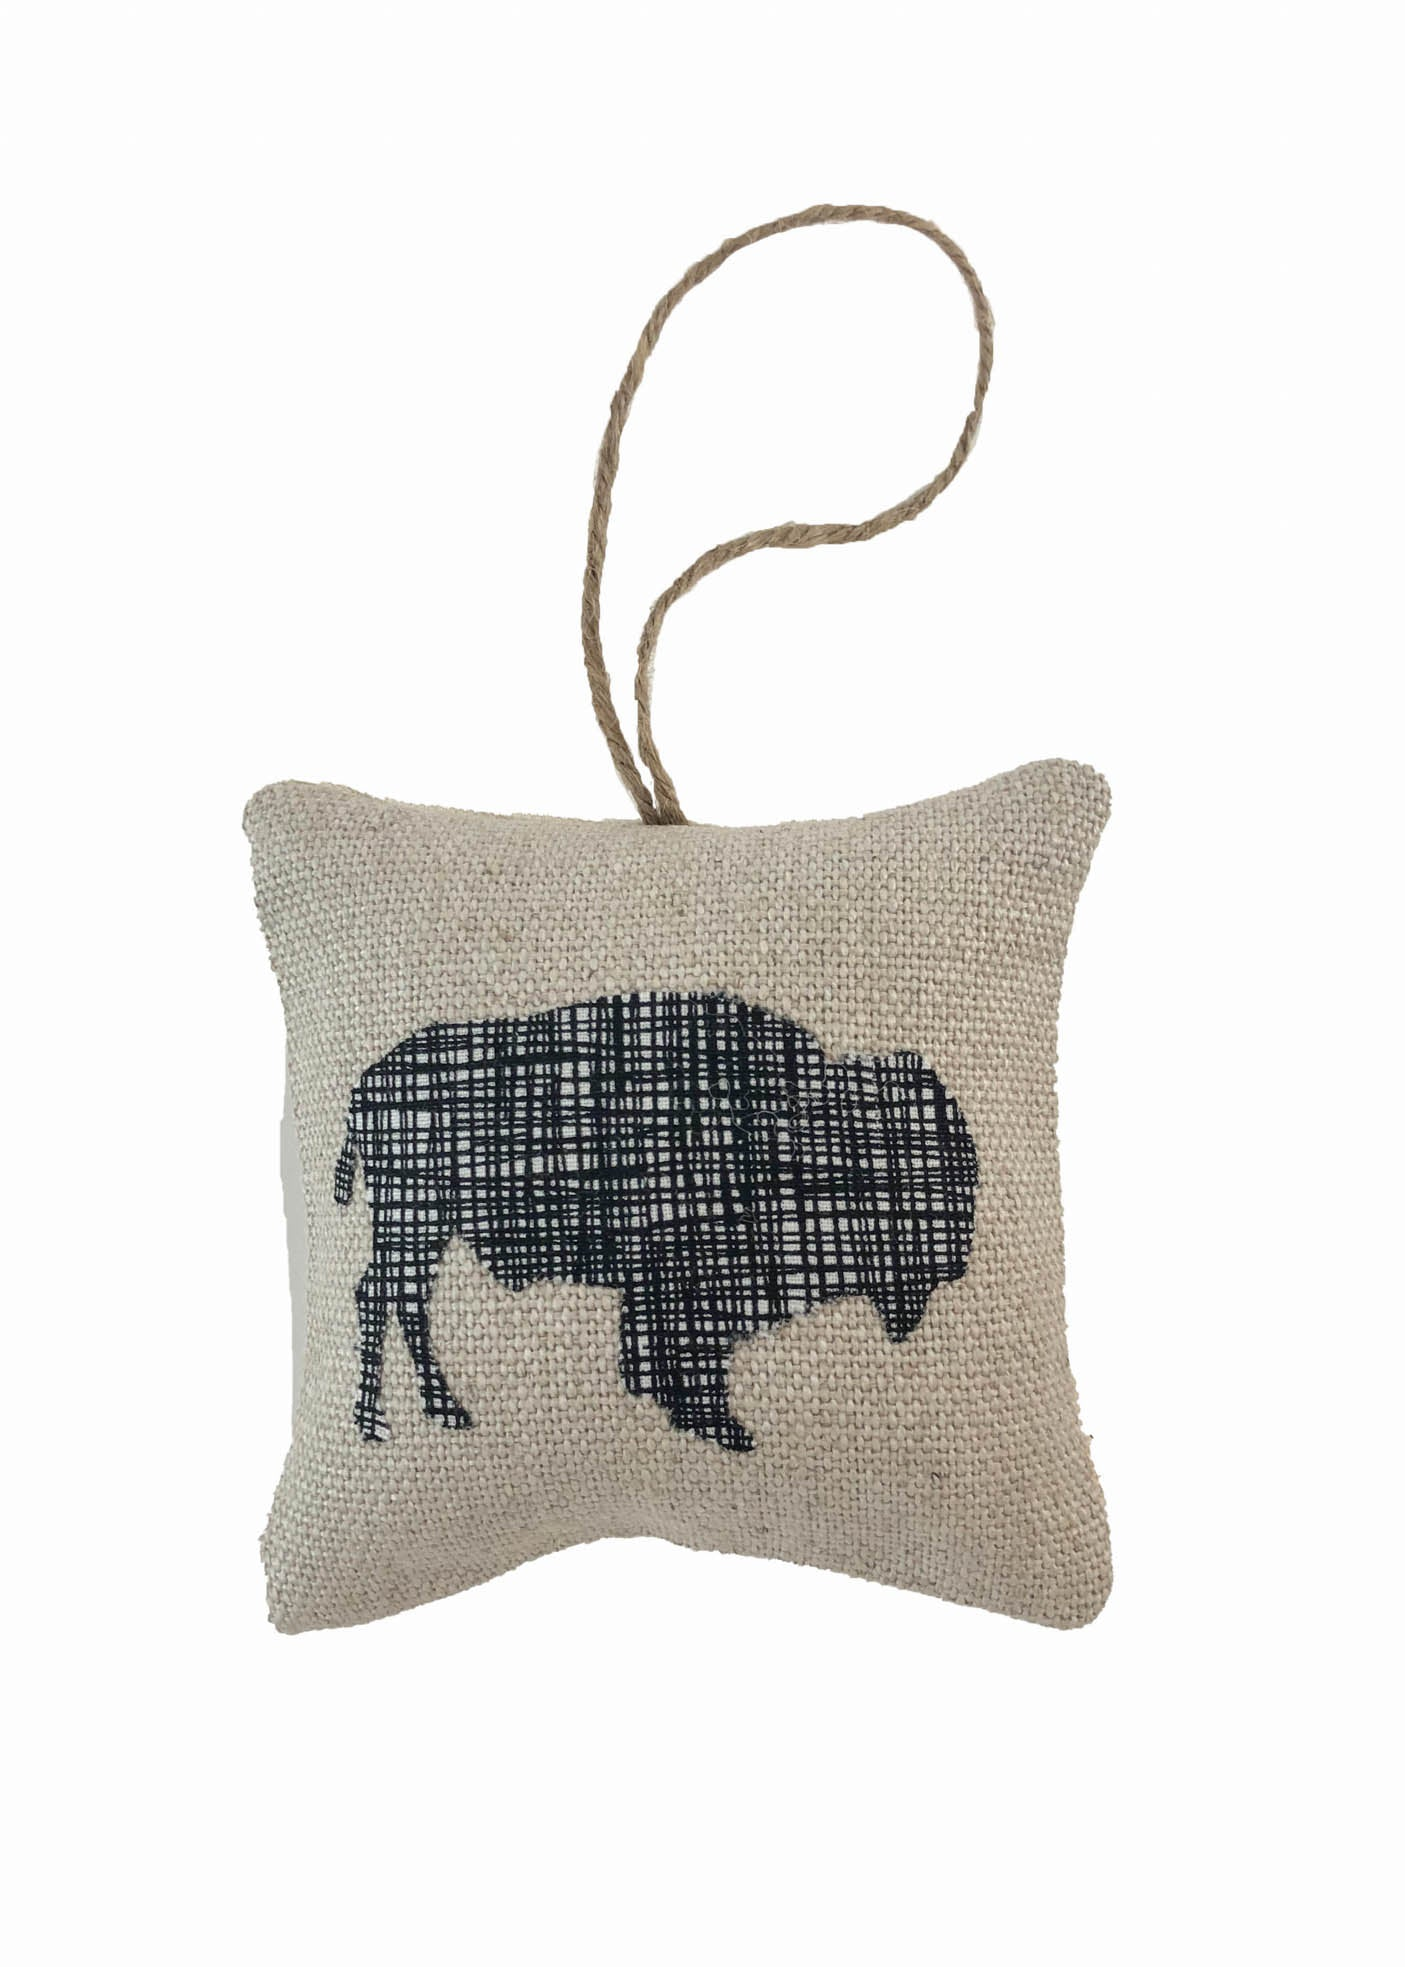 buffalo ornaments